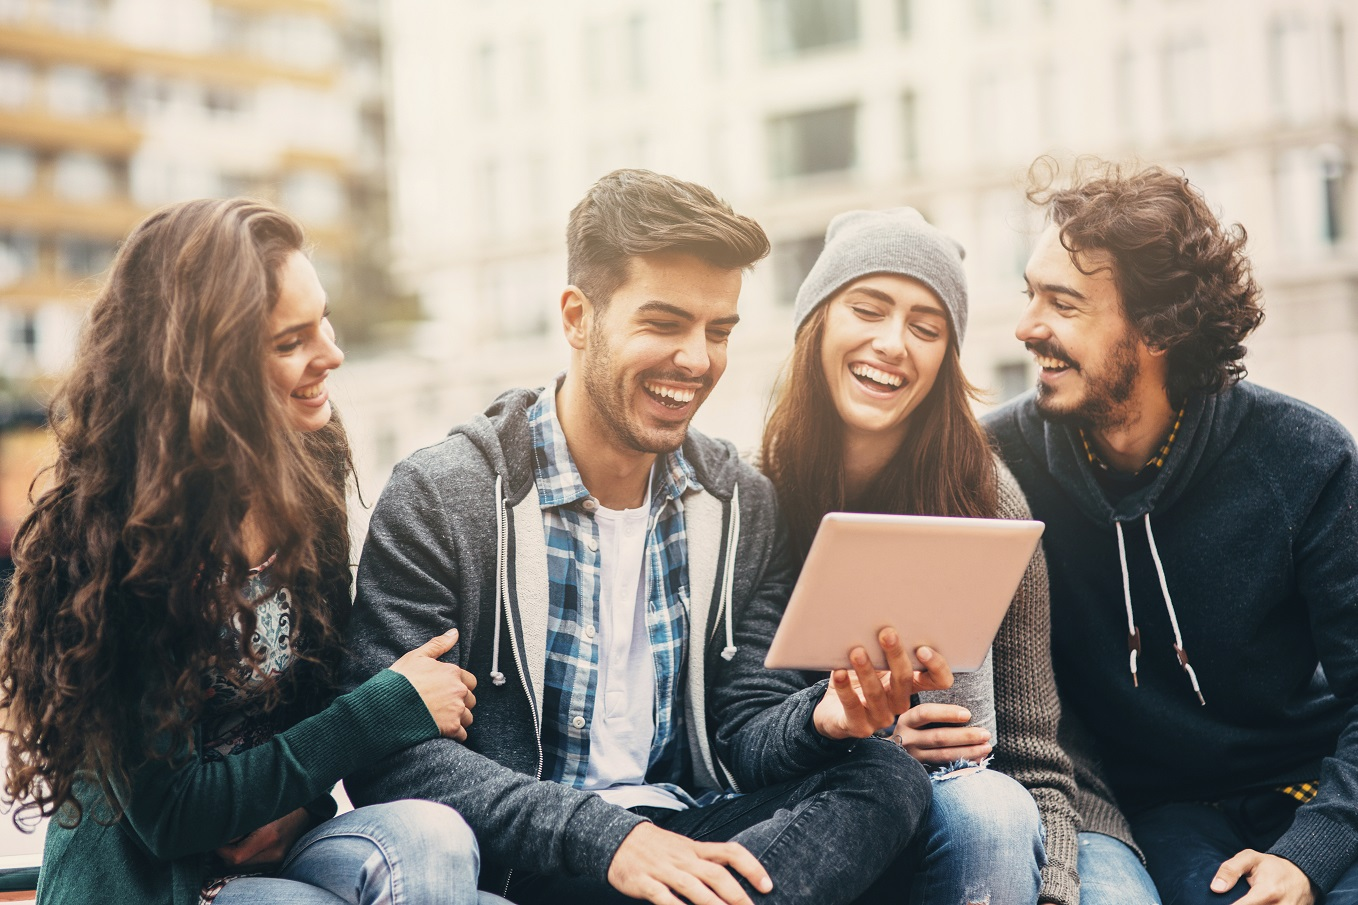 Millennials will have a profound impact on the insurance industry